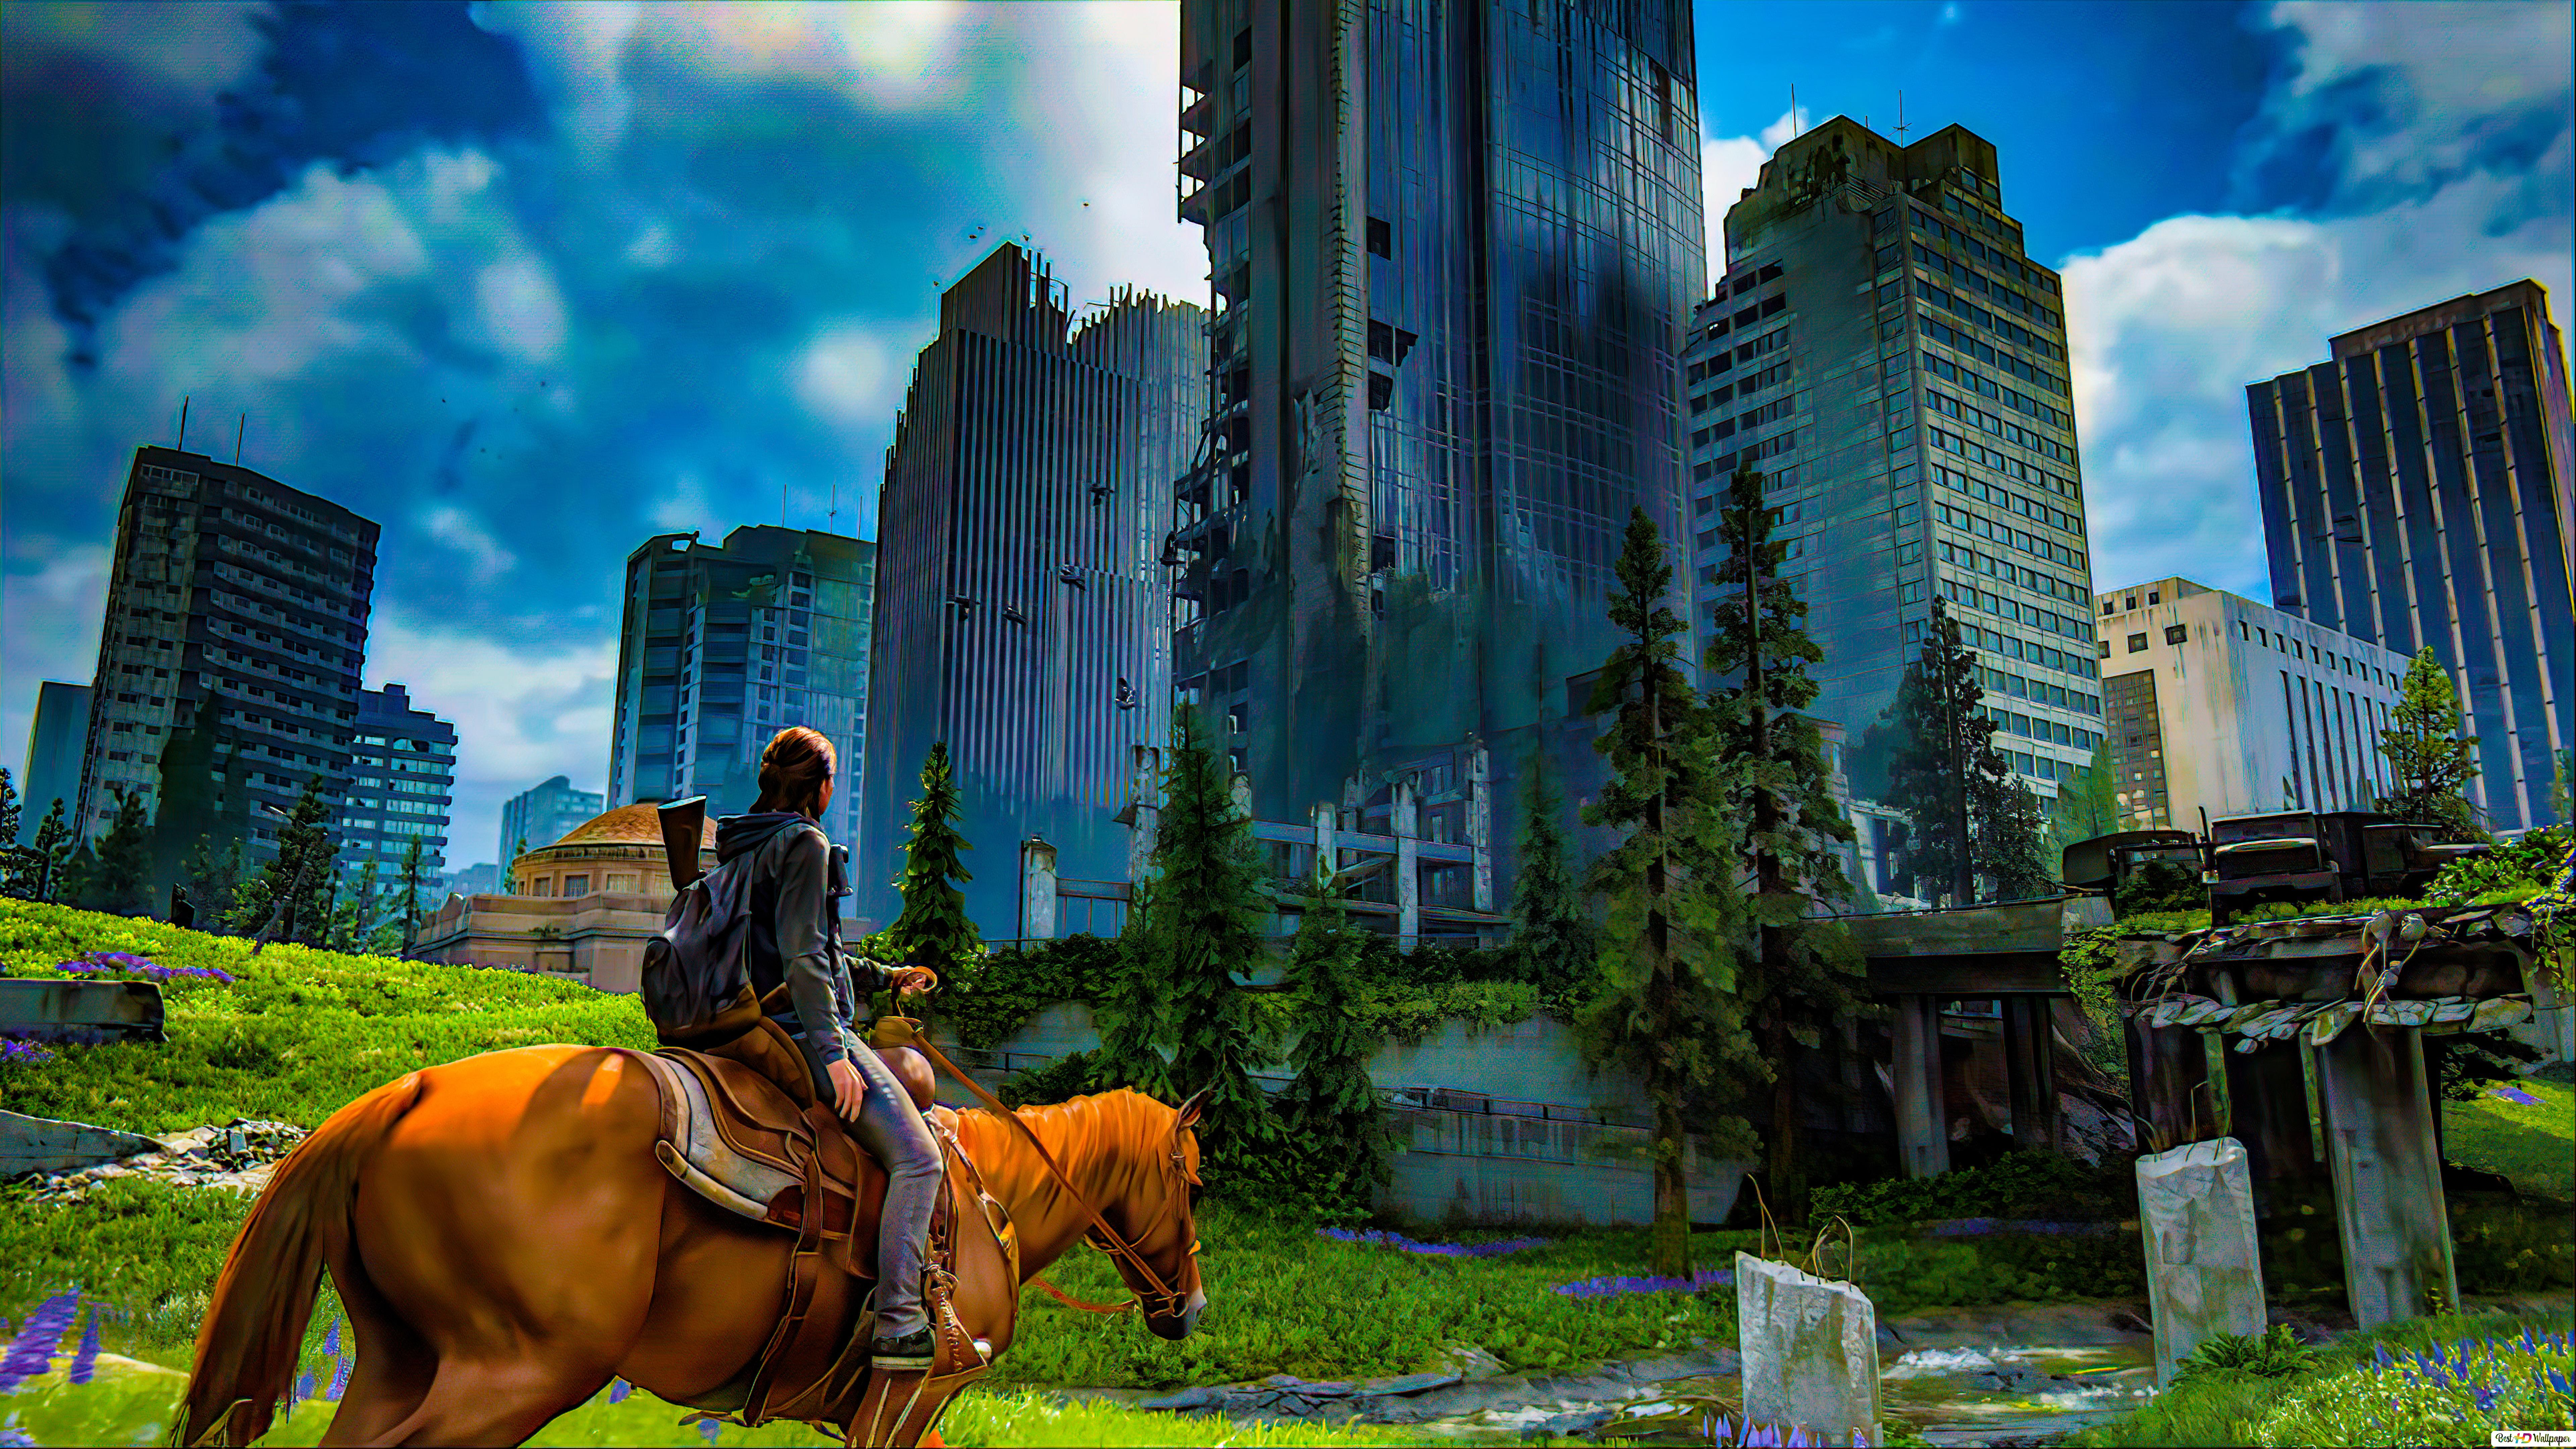 The Last Of Us 2 Ellie With Horse City 8k 4k Hd Wallpaper Download